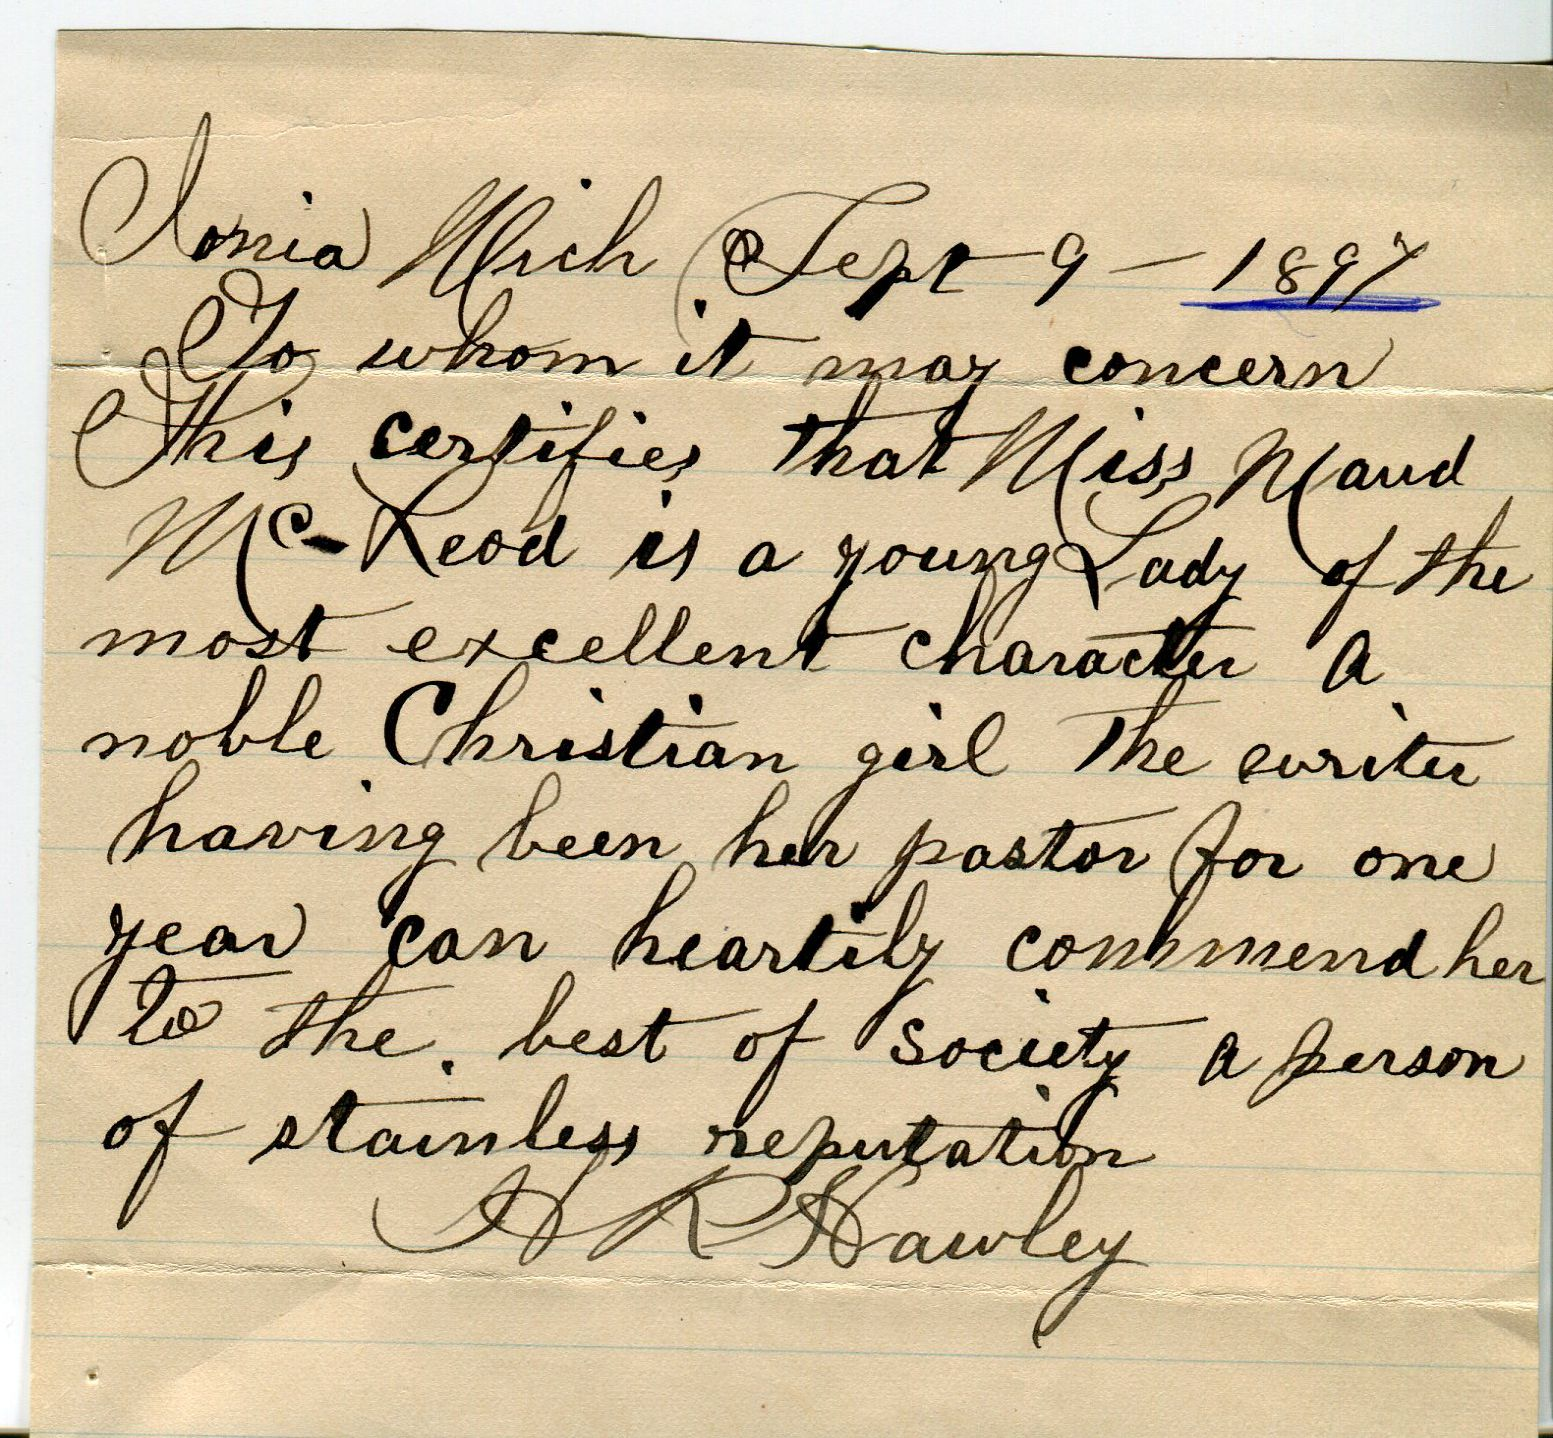 Handwritten letter attesting to Maud McLeod's good character